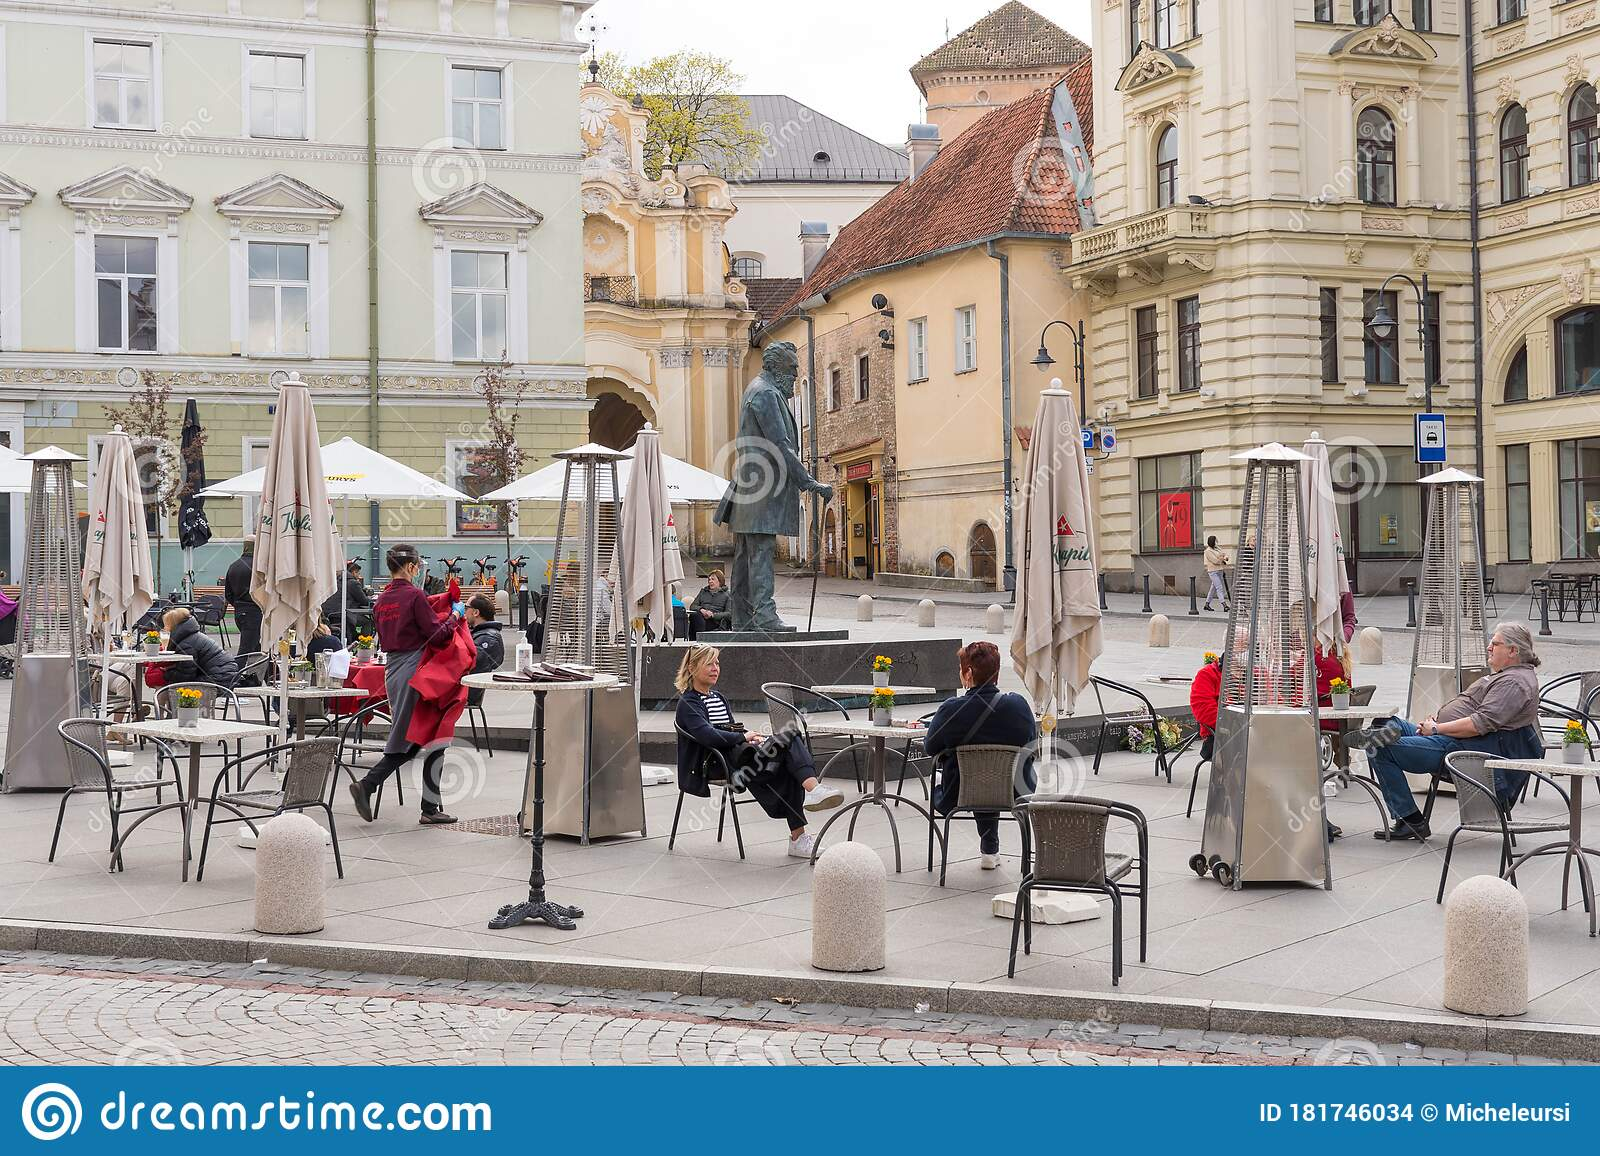 Outdoor Bar And Restaurant Vilnius Lithuania Editorial Stock Image Image Of Physical Architecture 181746034